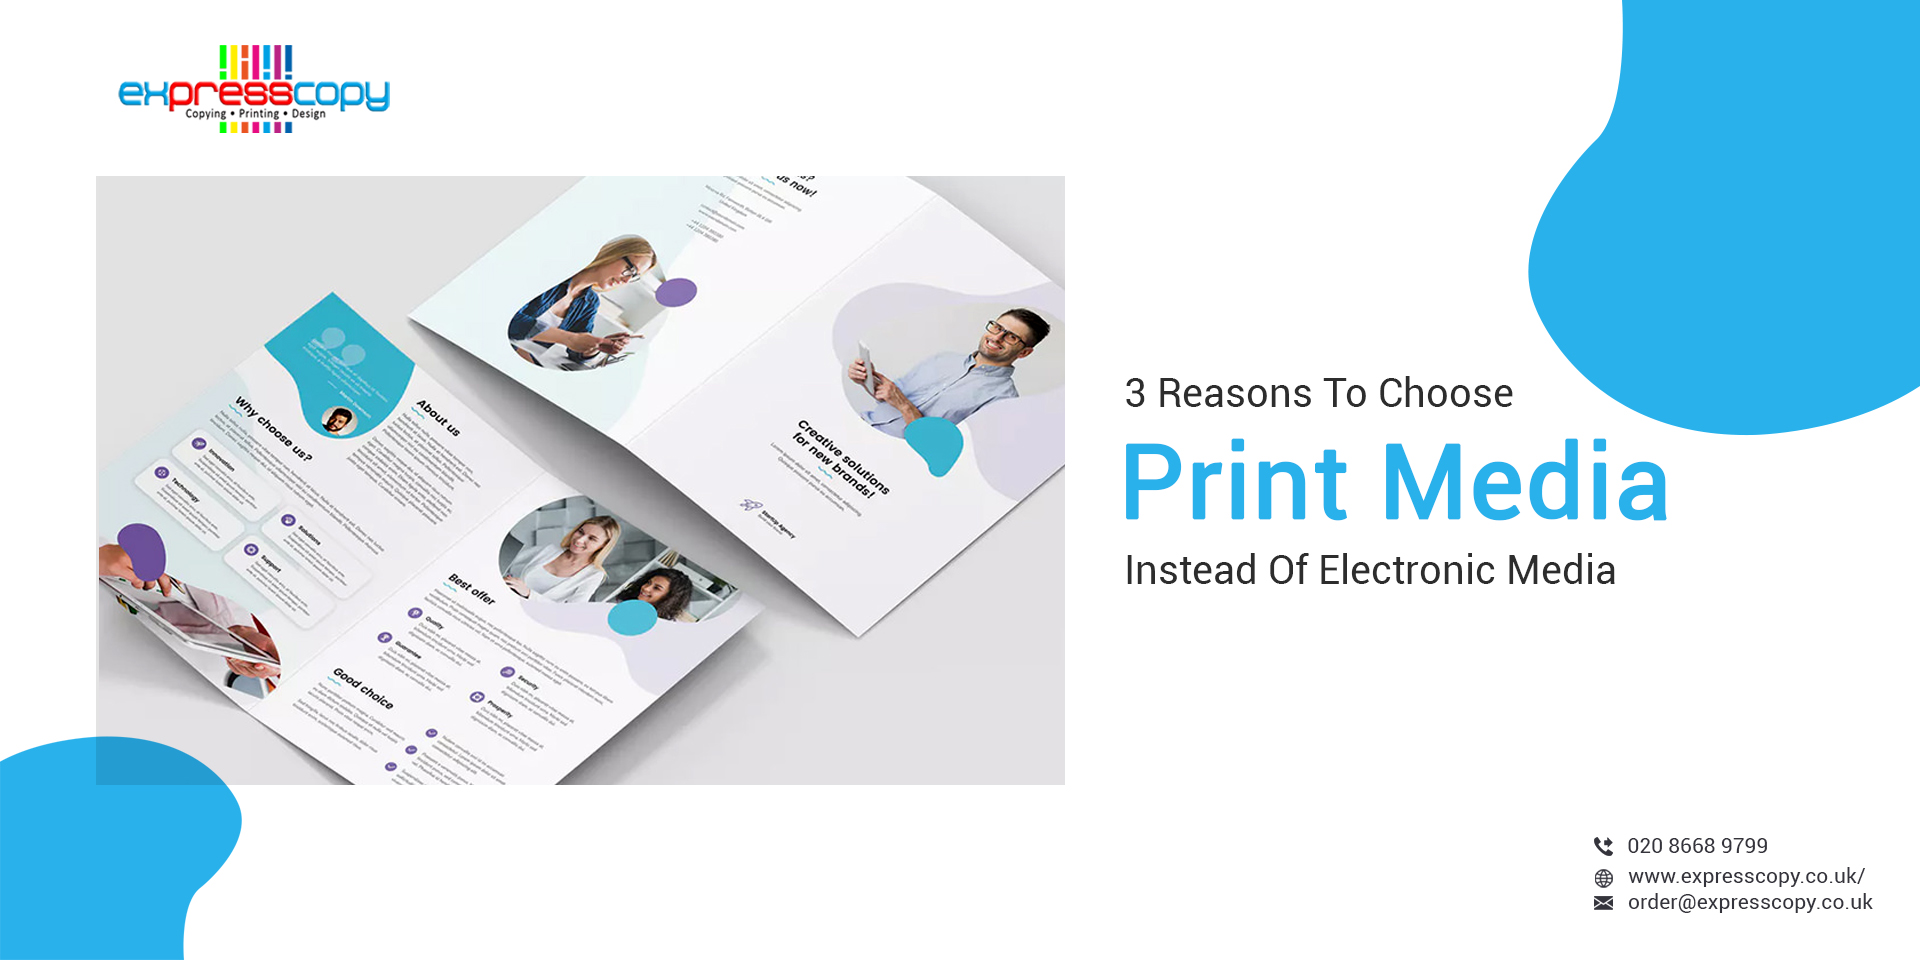 3 Reasons To Choose Print Media Instead Of Electronic Media